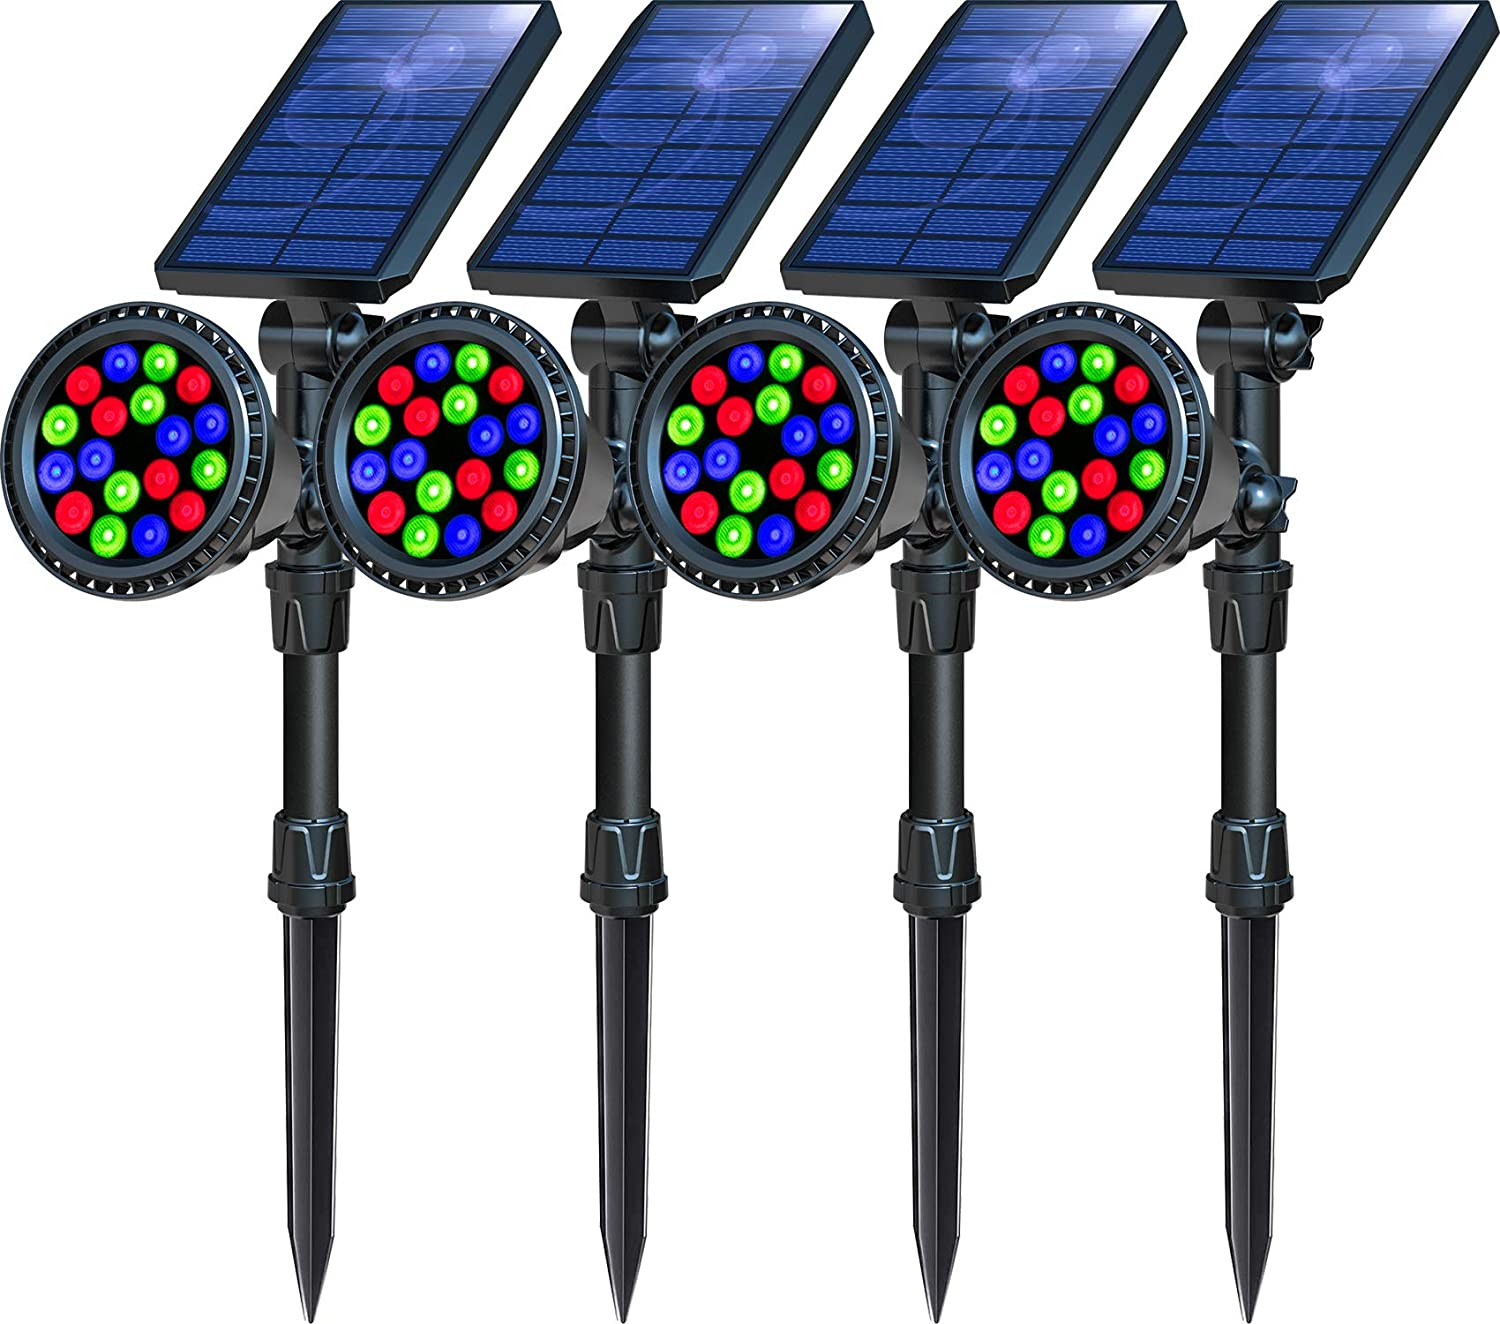 OSORD Solar Lights Outdoor, Upgraded 18 LED Waterproof Color Solar Landscape Spotlights 2-in-1 Adjustable Color Changing Solar Garden Lights for Pathway Yard Patio Lawn Decor, (4 Pack, Multicolor)